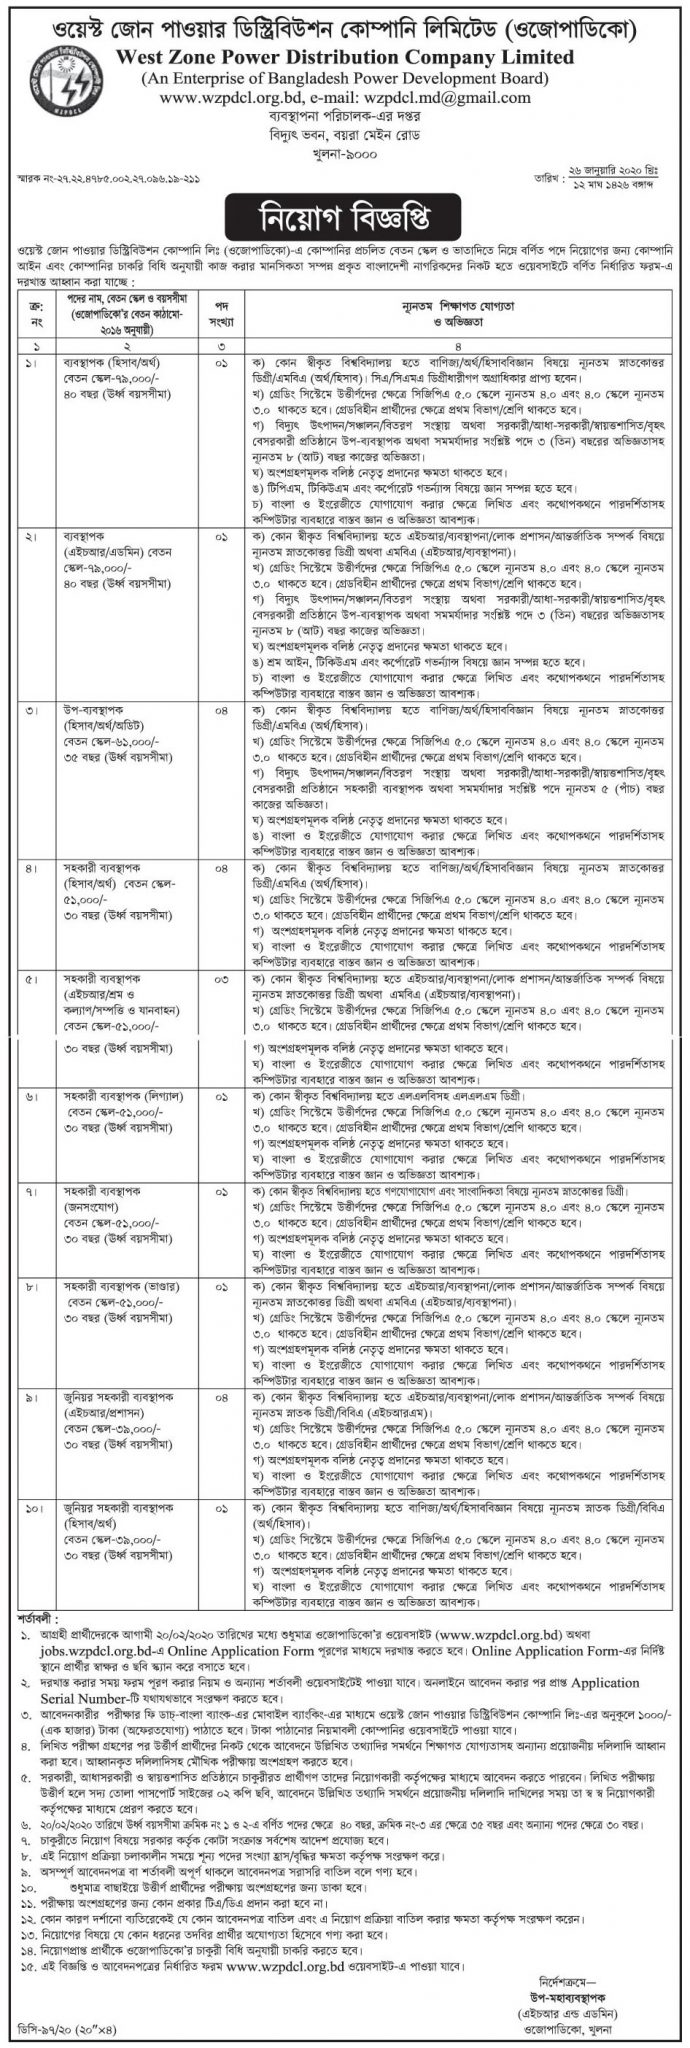 North-West Zone Power Distribution Job Circular 2020